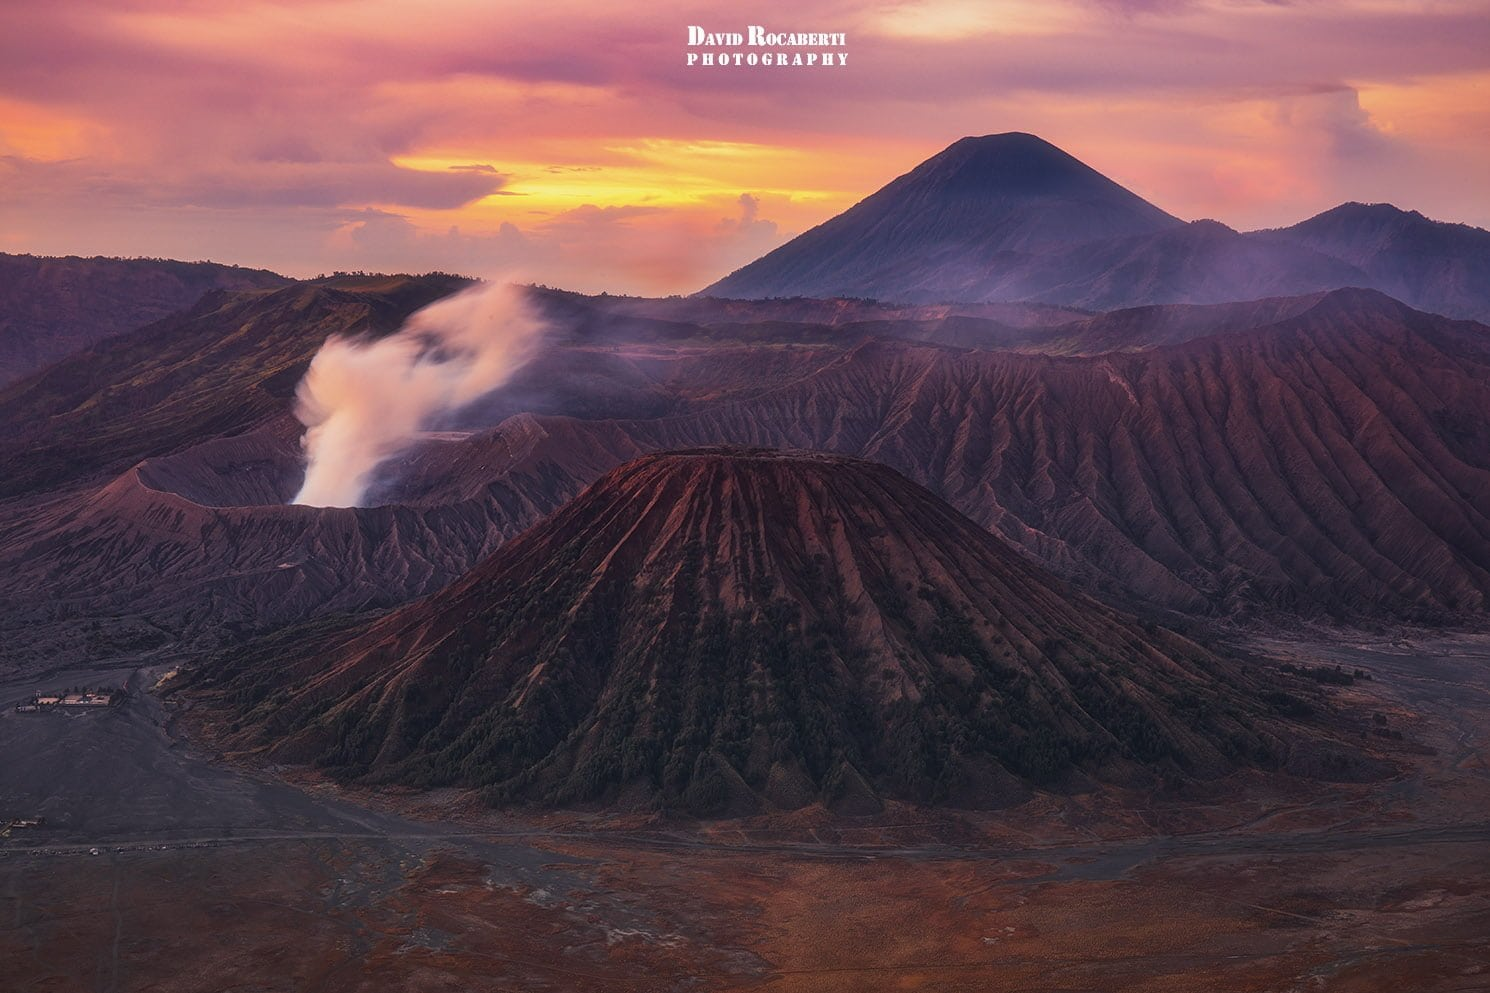 mt. bromo, mt bromo, mt. bromo, mt bromo tour, mt. bromo tour, bromo tour, bromo tours, bromo volcano tours, bromo tour from bali, bromo ijen tour, indonesia volcanoes tours, indonesia volcano tour, tours to active volcanoes in indonesia, indonesian volcano tour, indonesia volcano tour from bali, mt bromo sunrise, mt. bromo sunrise tour, bromo sunrise